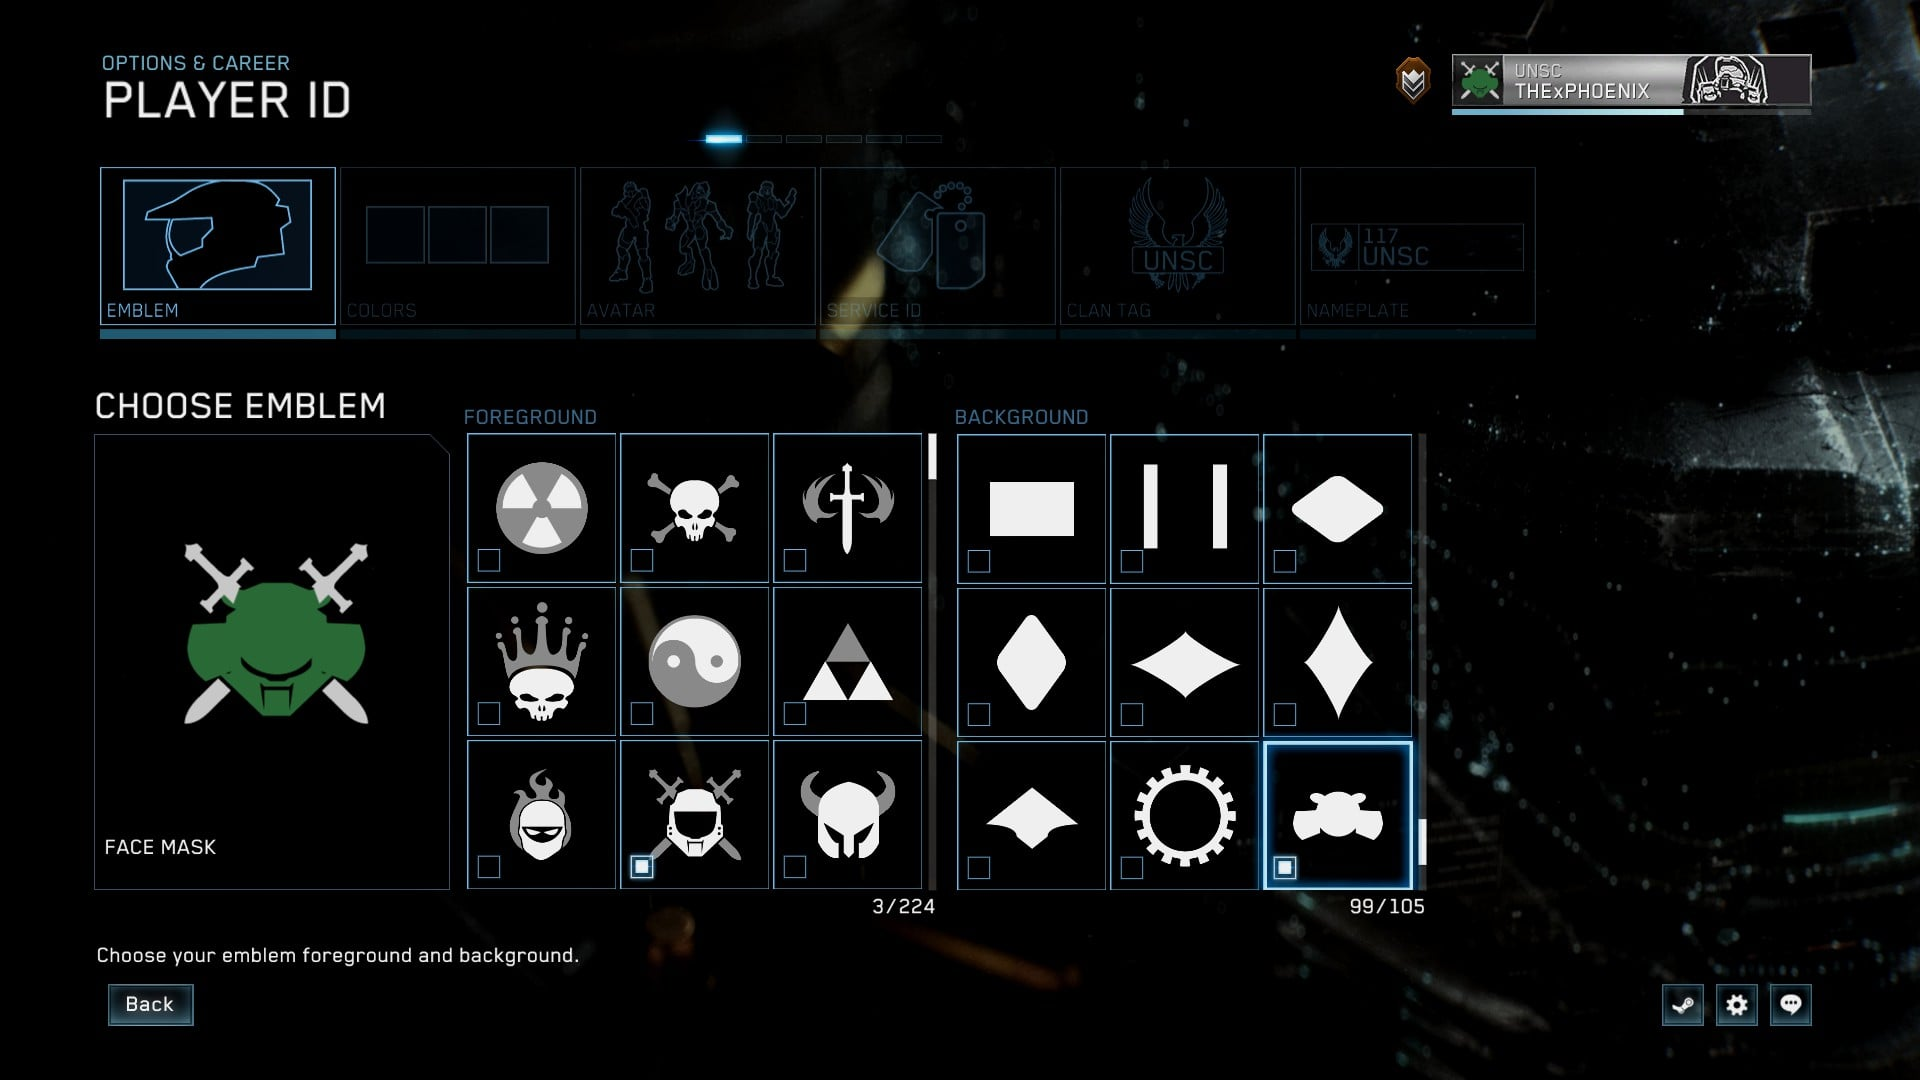 Halo The Master Chief Collection Emblem Ideas Naguide